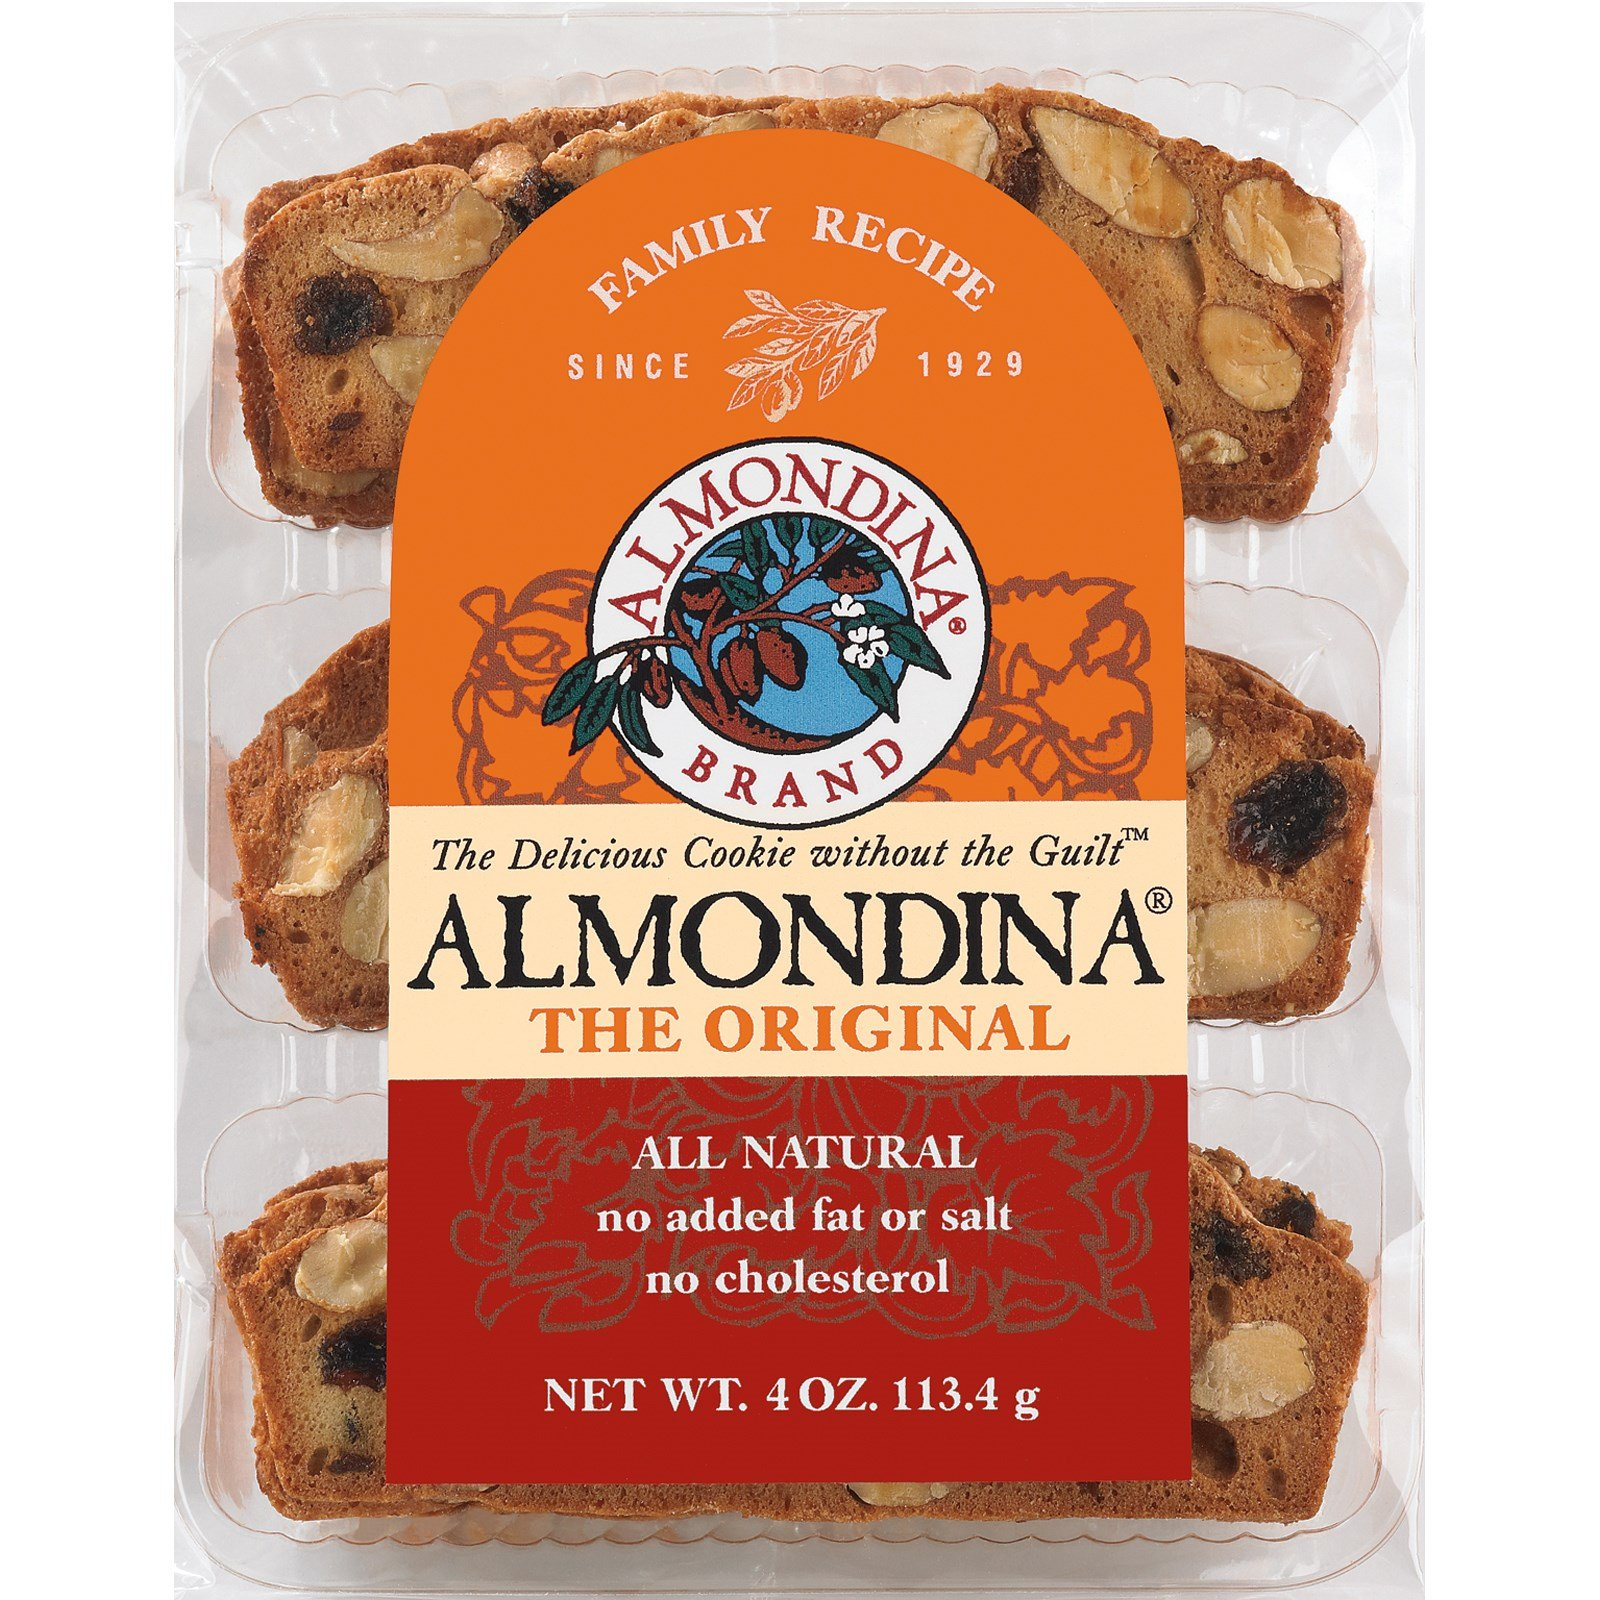 Almondina, The Original Almond Biscuits, 4 oz(Pack of 6)